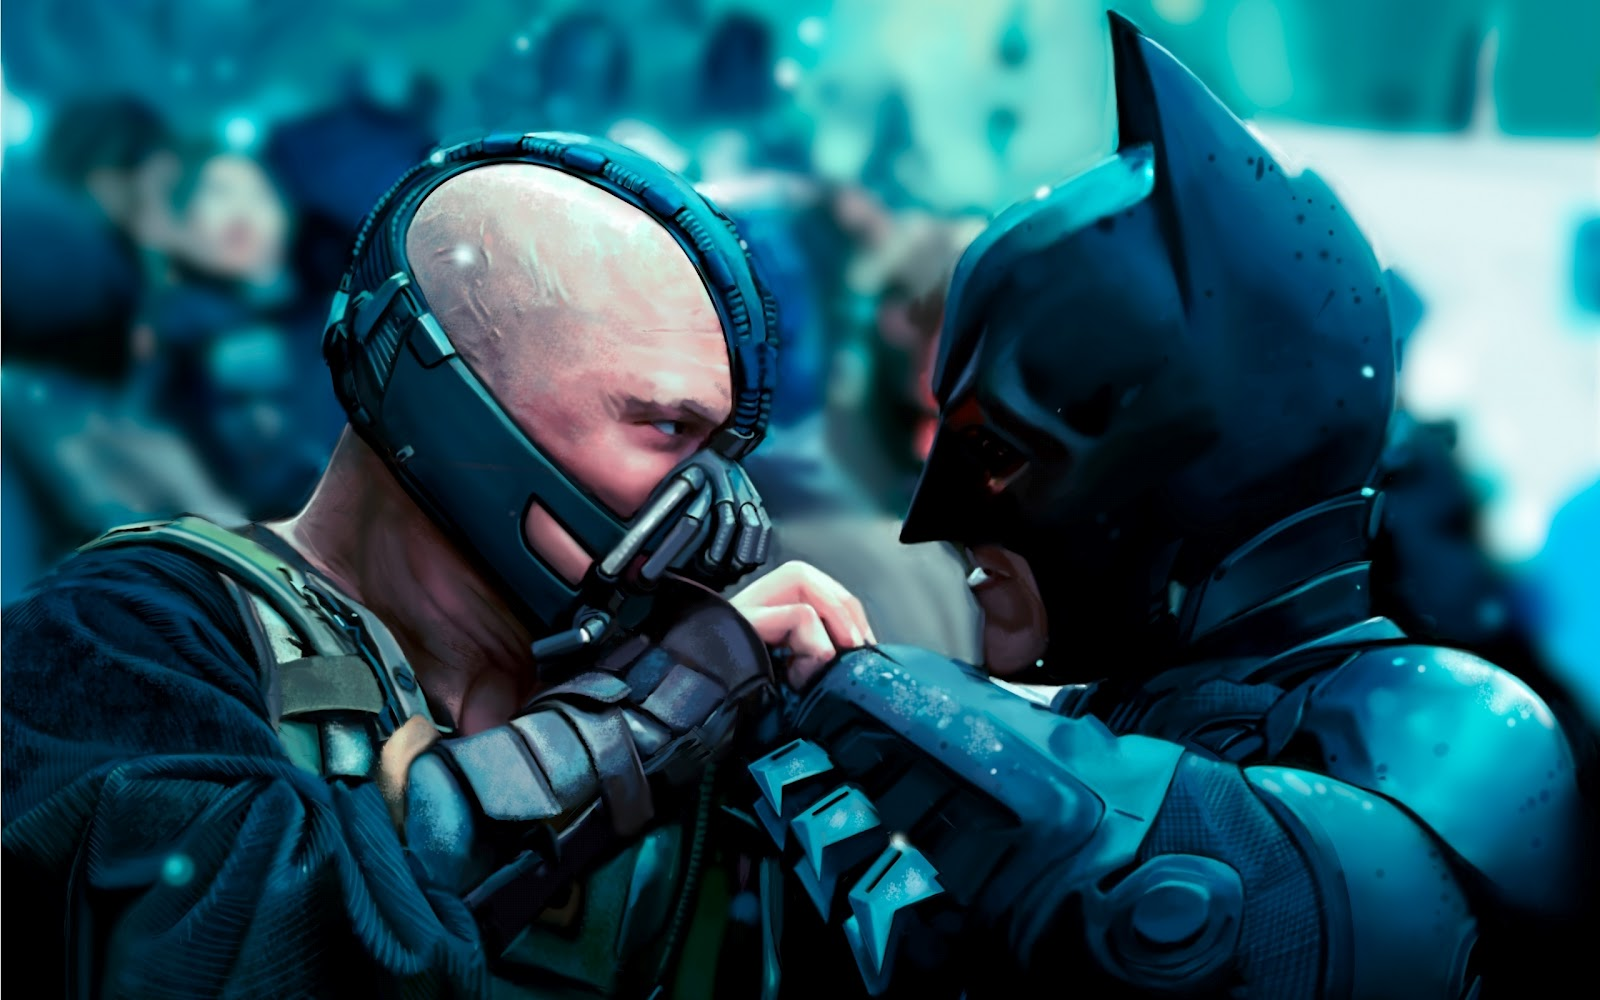 http://4.bp.blogspot.com/-wHQQh_D3r9E/UFh3Ef4arRI/AAAAAAAAnFs/YmgC77Qi-xs/s1600/Batman-Dark-Knight-Rises_Movies-Wallpapers.jpg